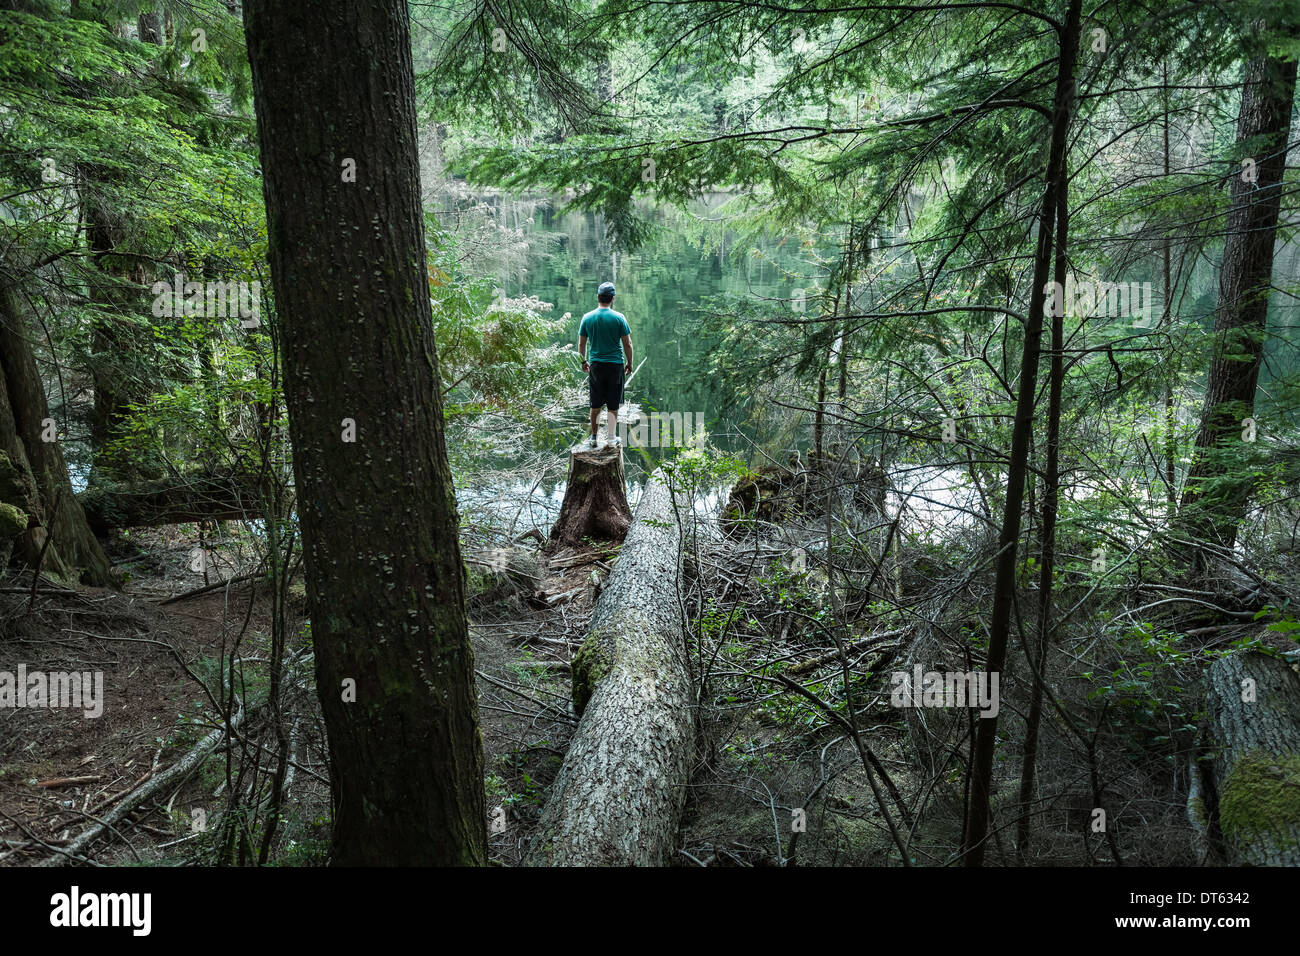 Homme debout en forêt, Buntzen Lake, British Columbia, Canada Photo Stock